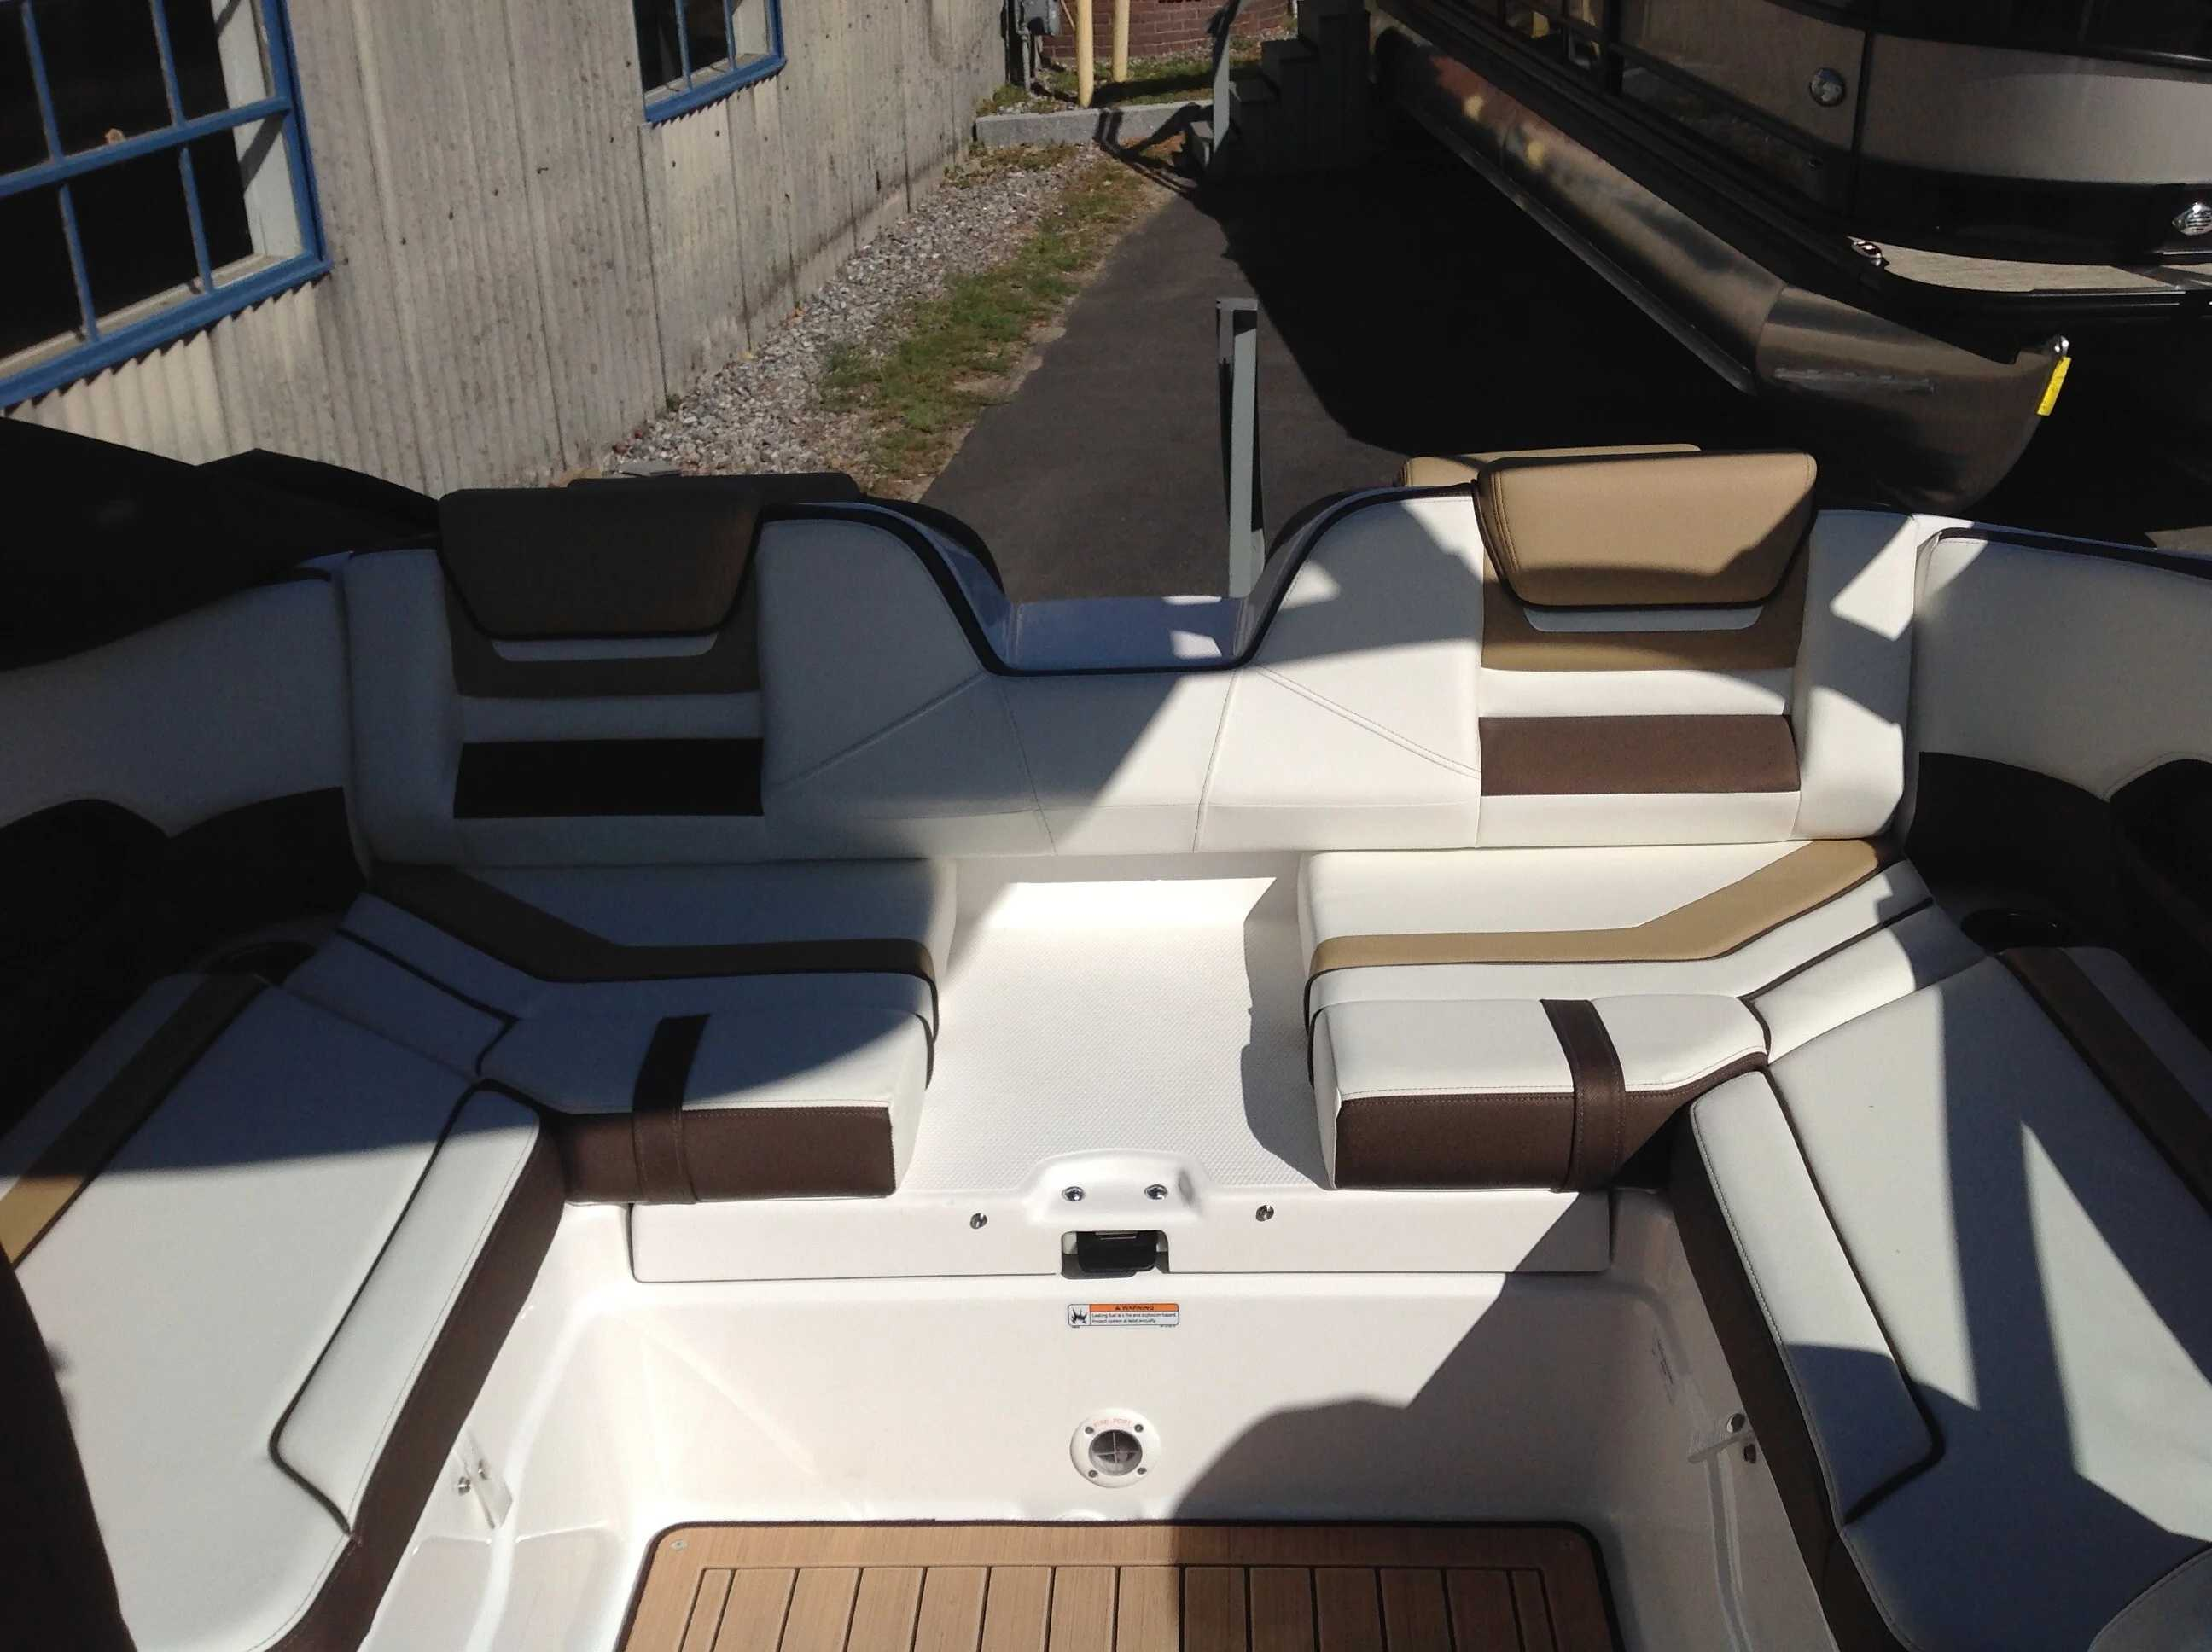 2021 Yamaha boat for sale, model of the boat is 212se & Image # 10 of 14